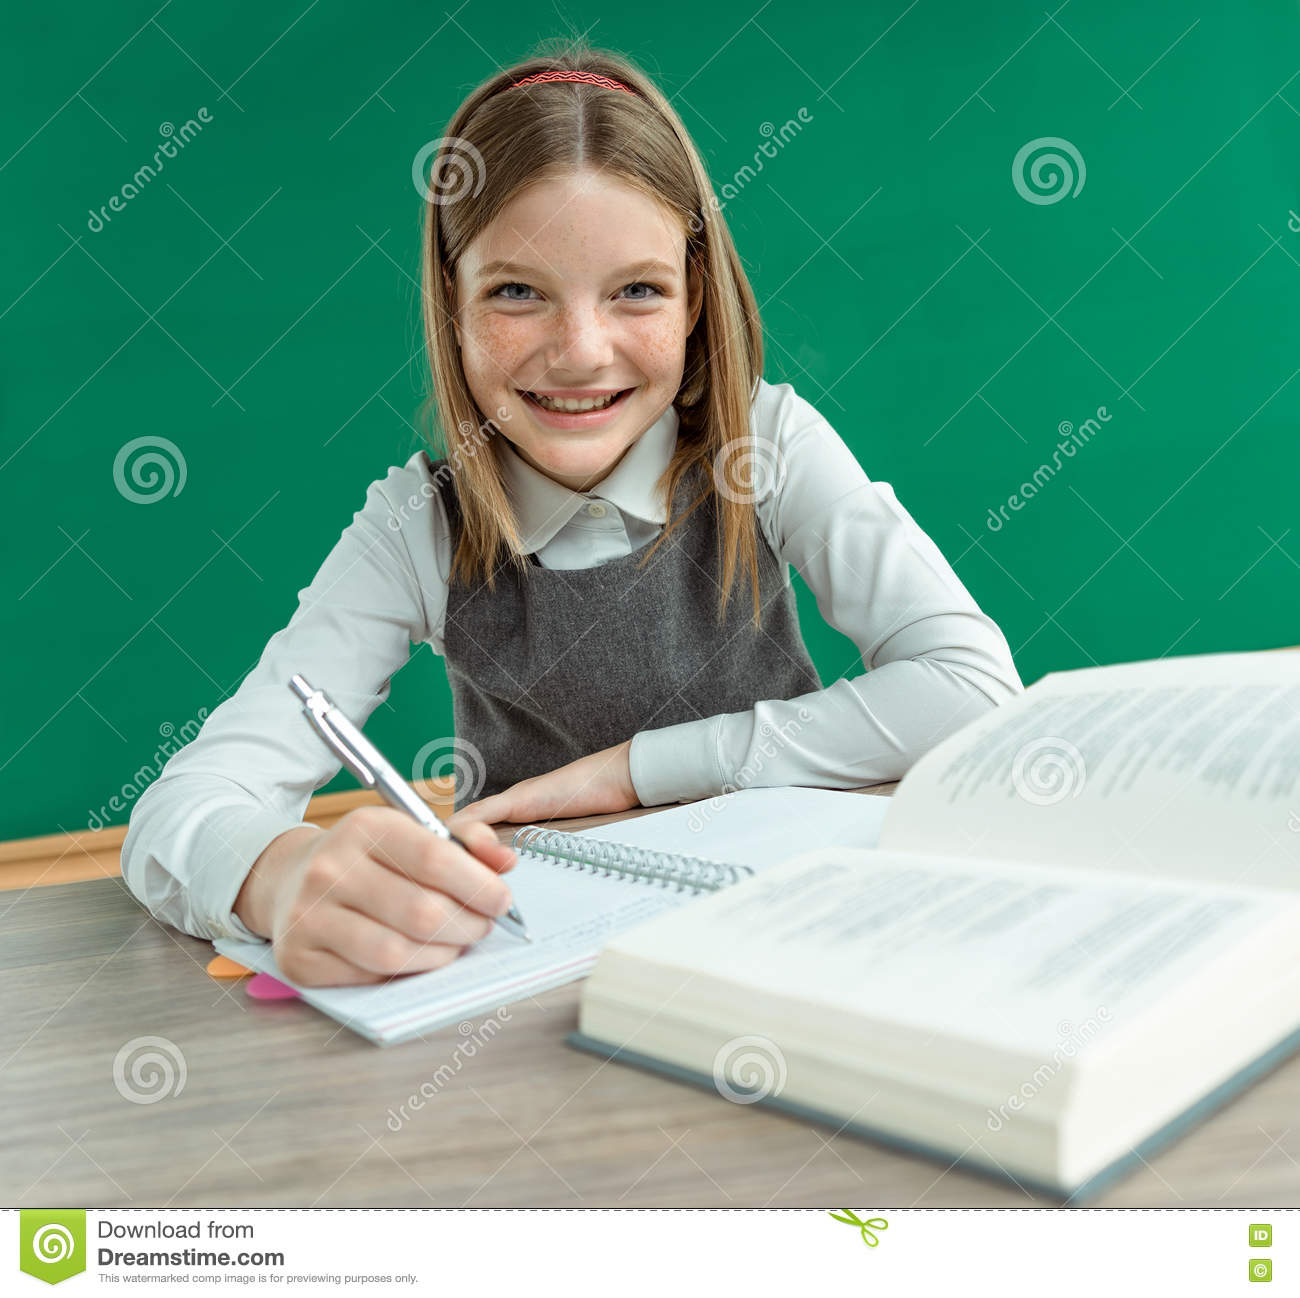 Clever School Girl: Happy Joyful Teenage Girl Teaches Homework. Stock Photo